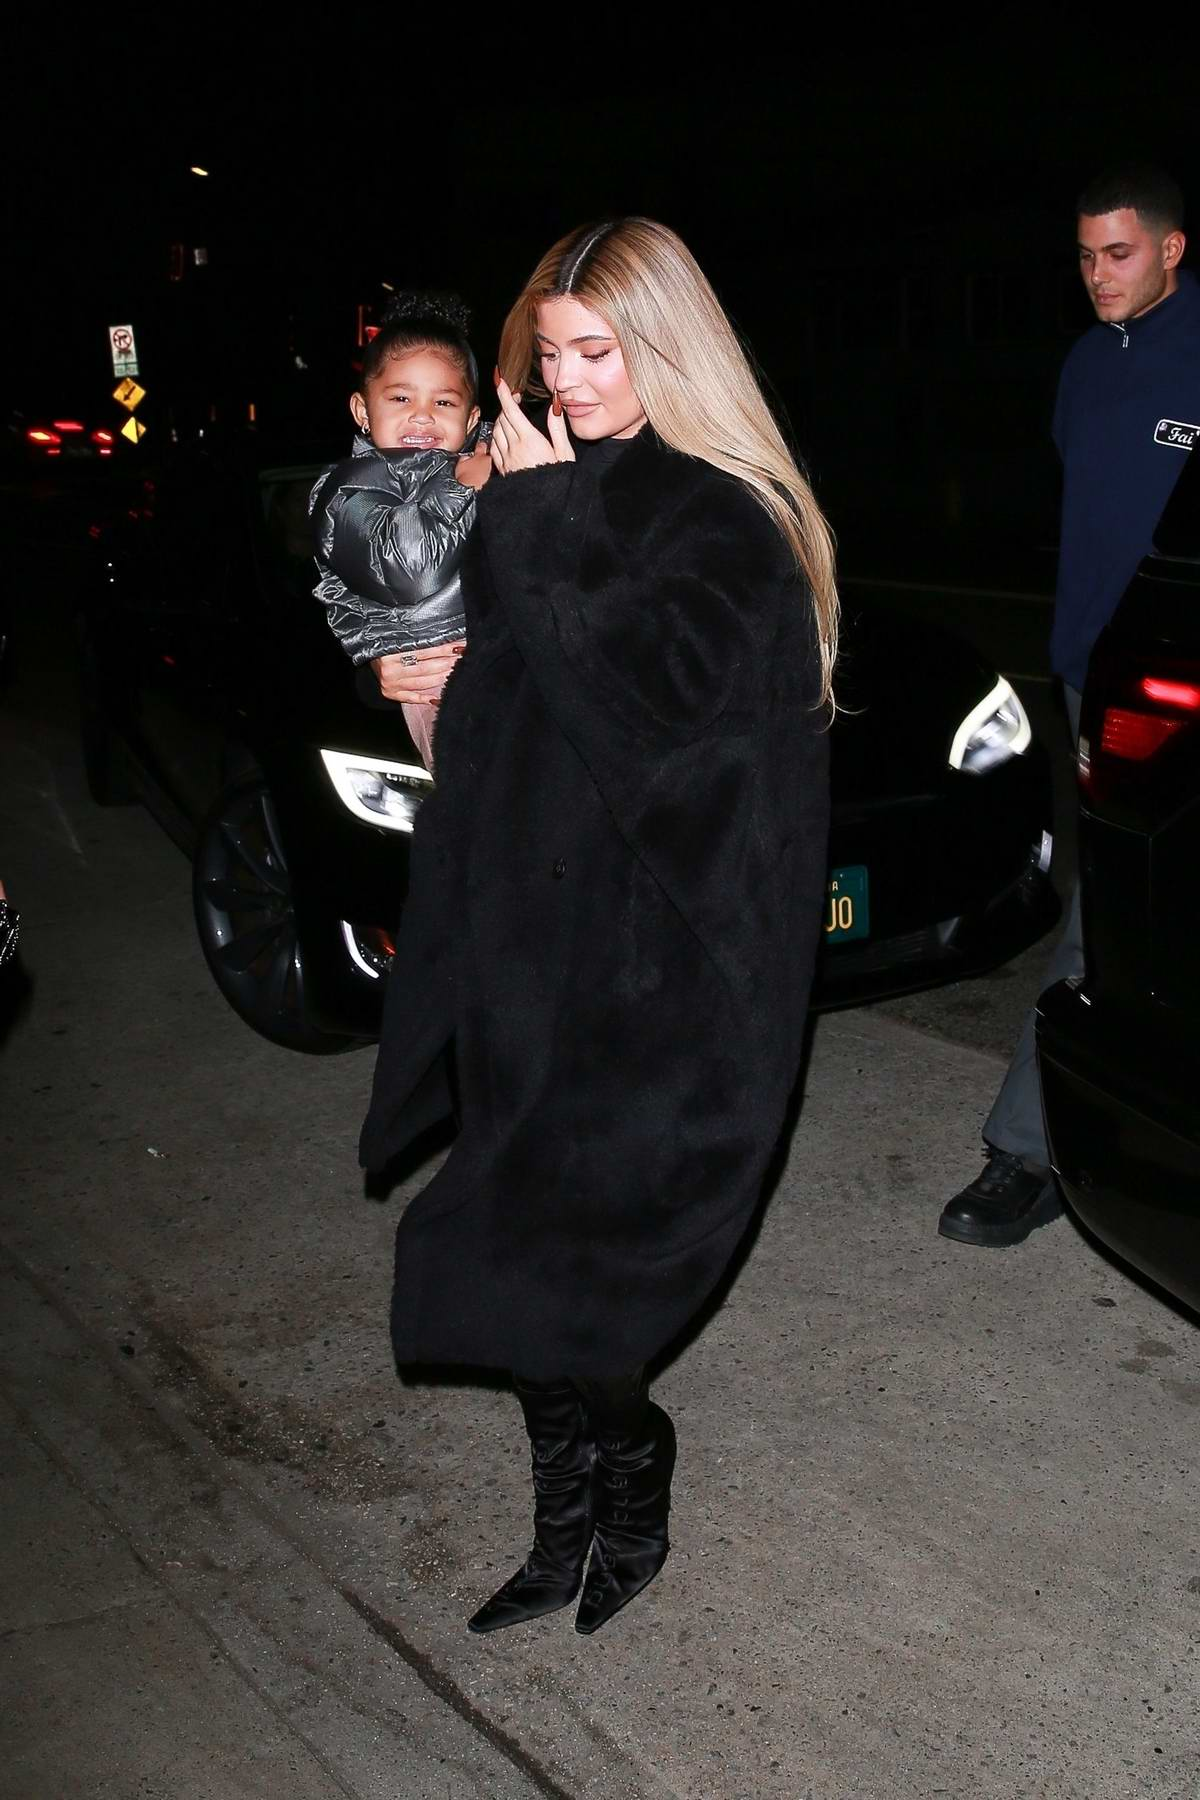 Kylie Jenner seen wearing all-black as she steps out for dinner with friends in Santa Monica, California